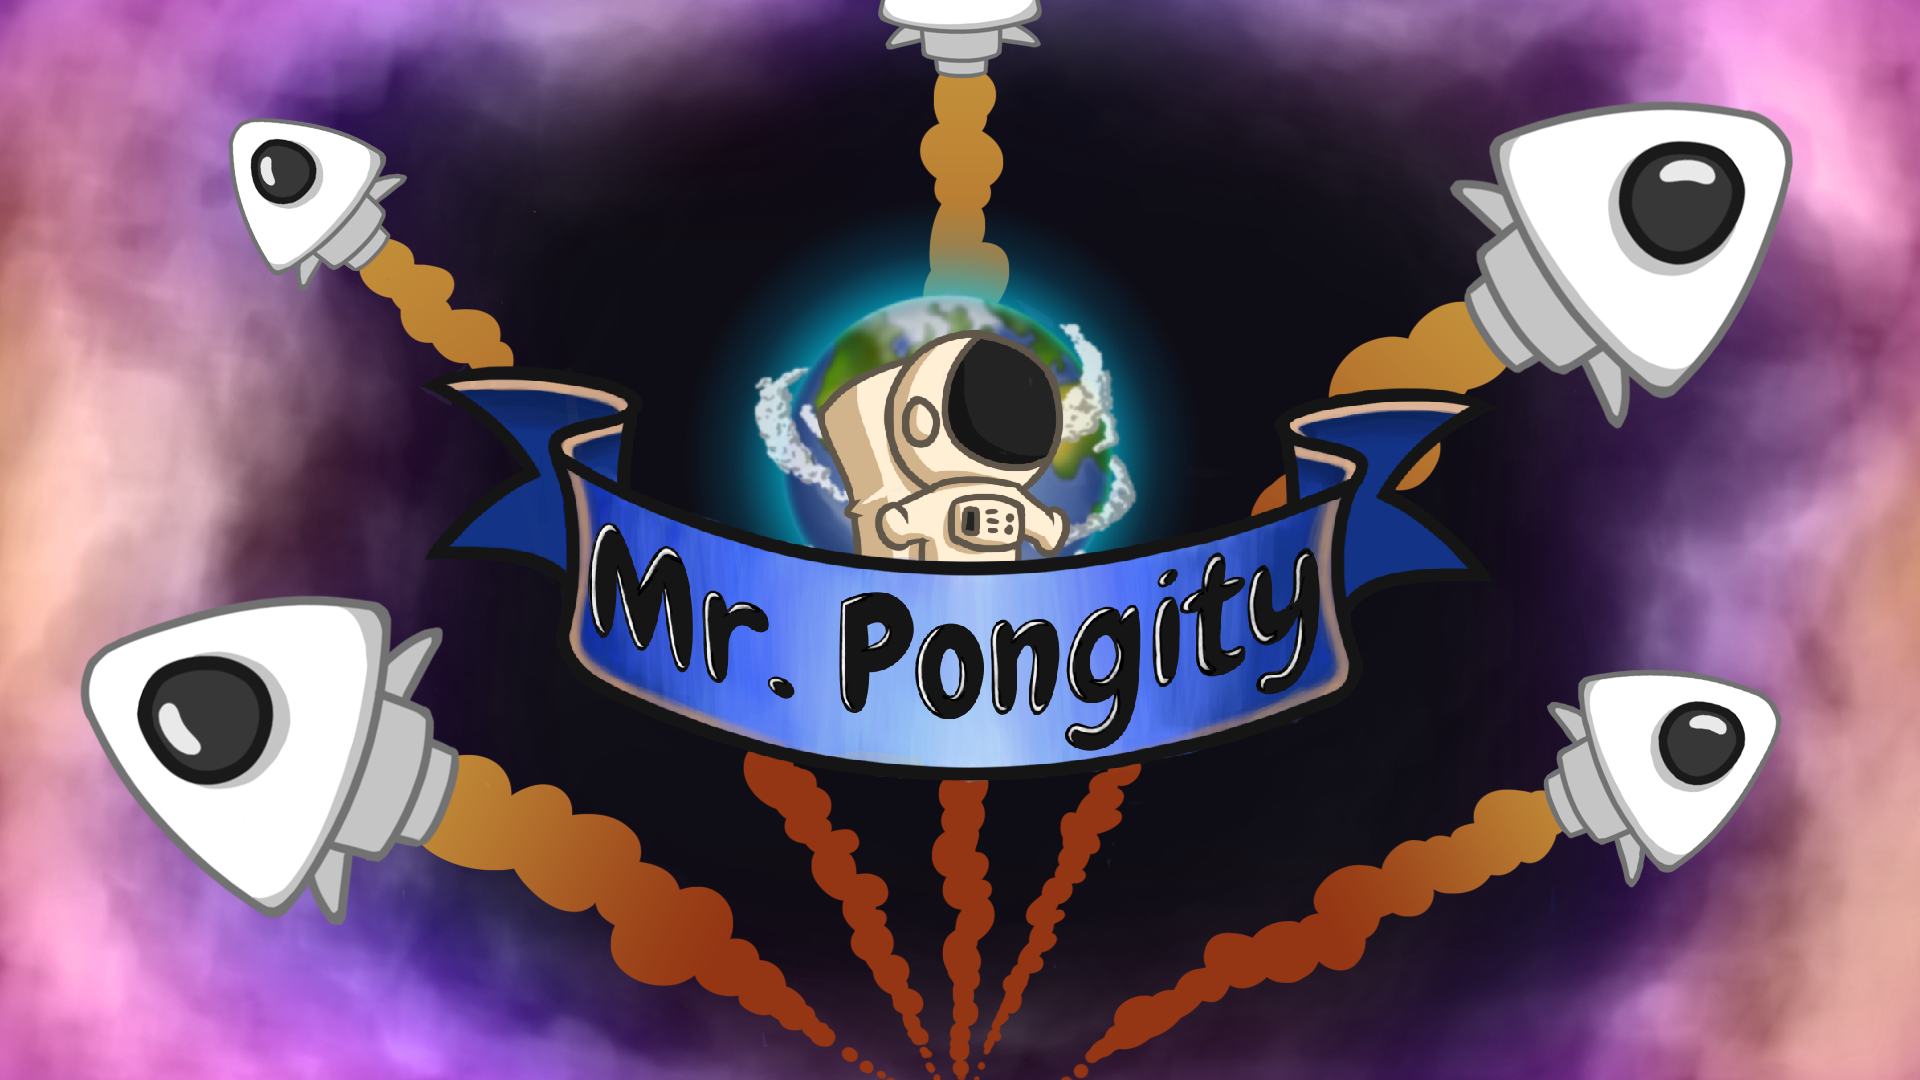 Mr. Pongity